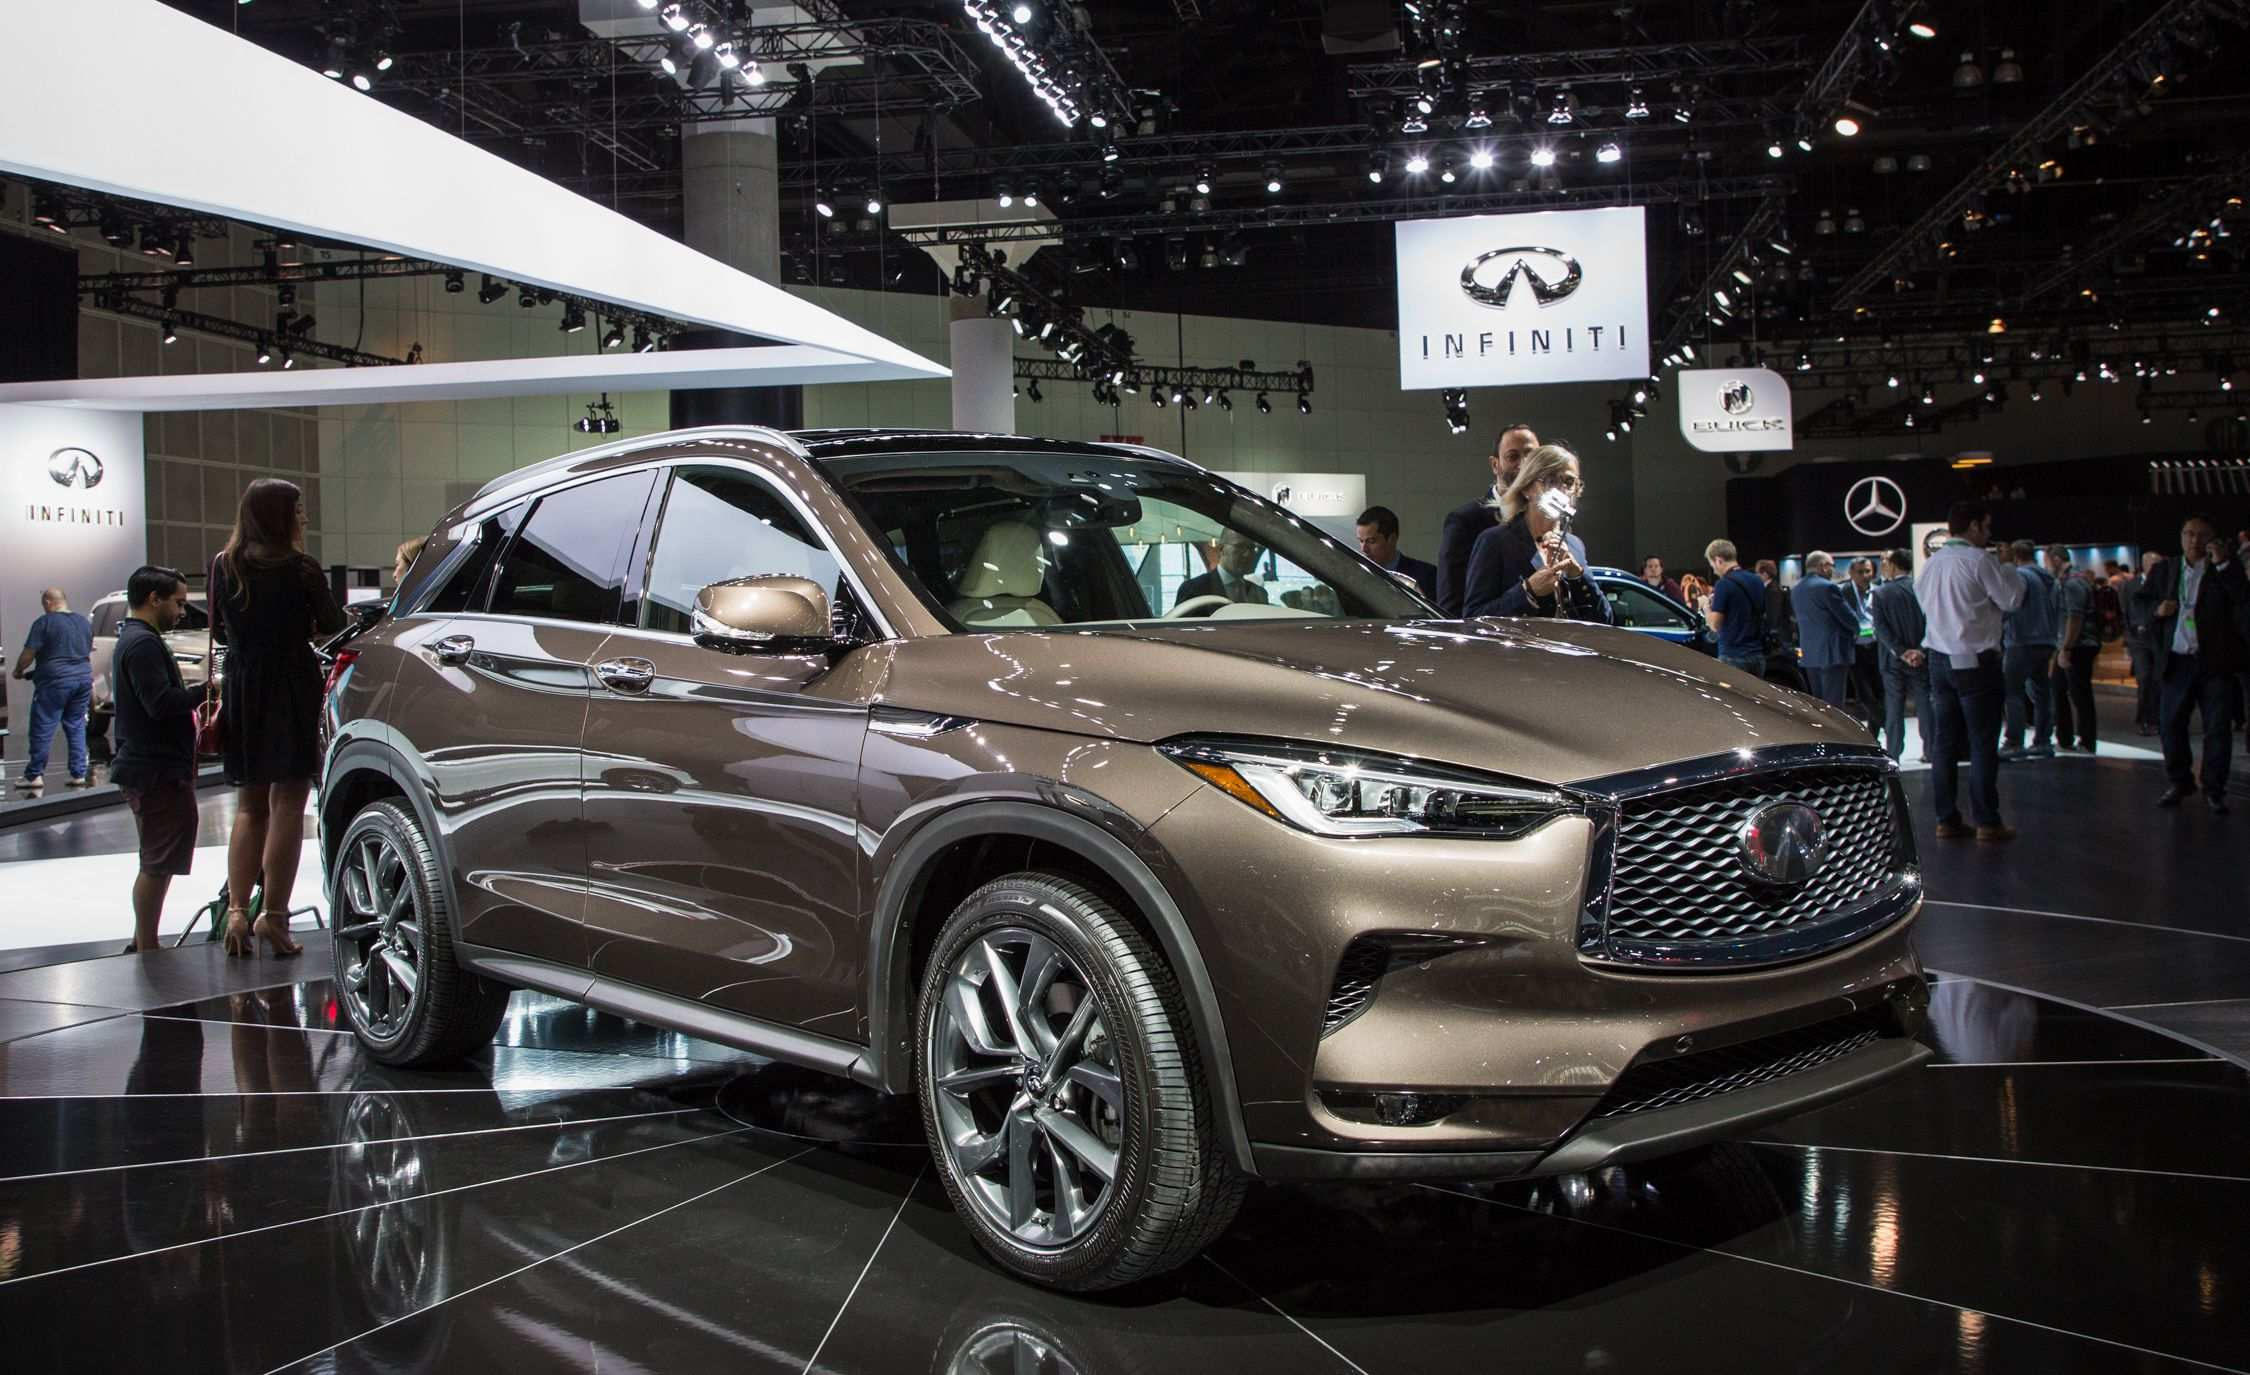 16 Concept of The Infiniti News 2019 Review Release for The Infiniti News 2019 Review